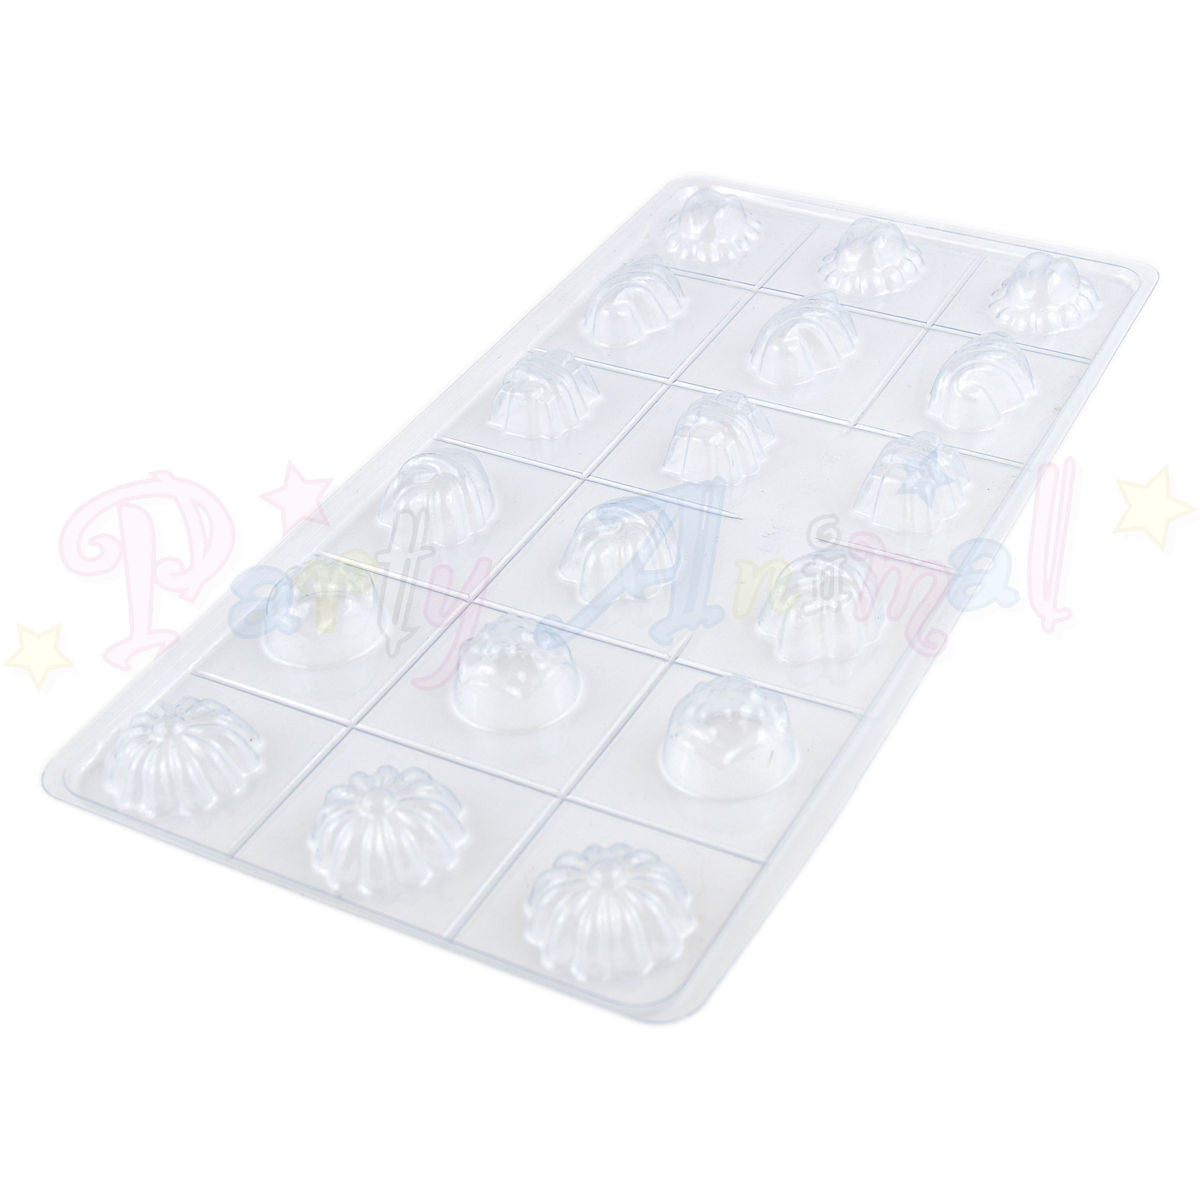 Chocolate Sweet Moulds - Fondant Moulds - 18 impressions